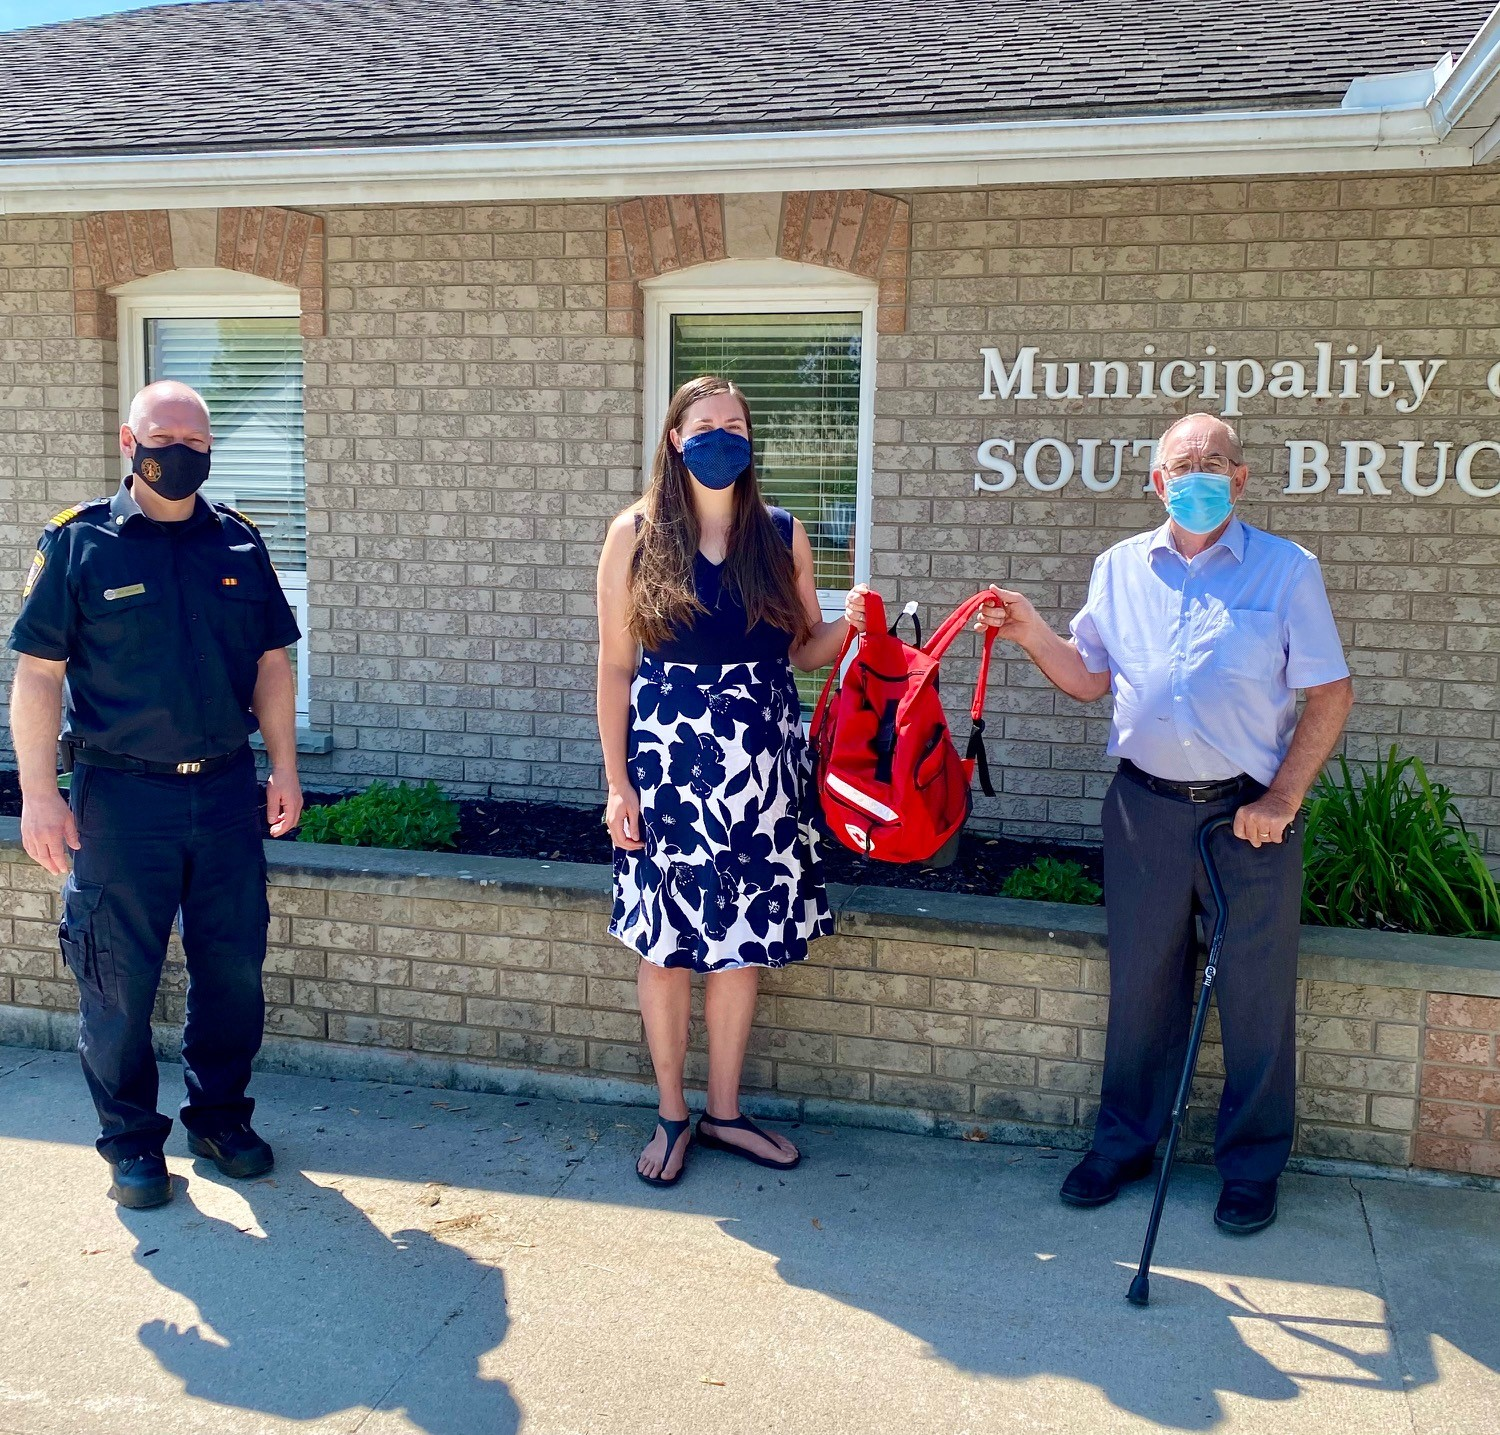 Pictured is Chief Gallant, Hilory Murphy, and Mayor Buckle, presenting a red emergency kit